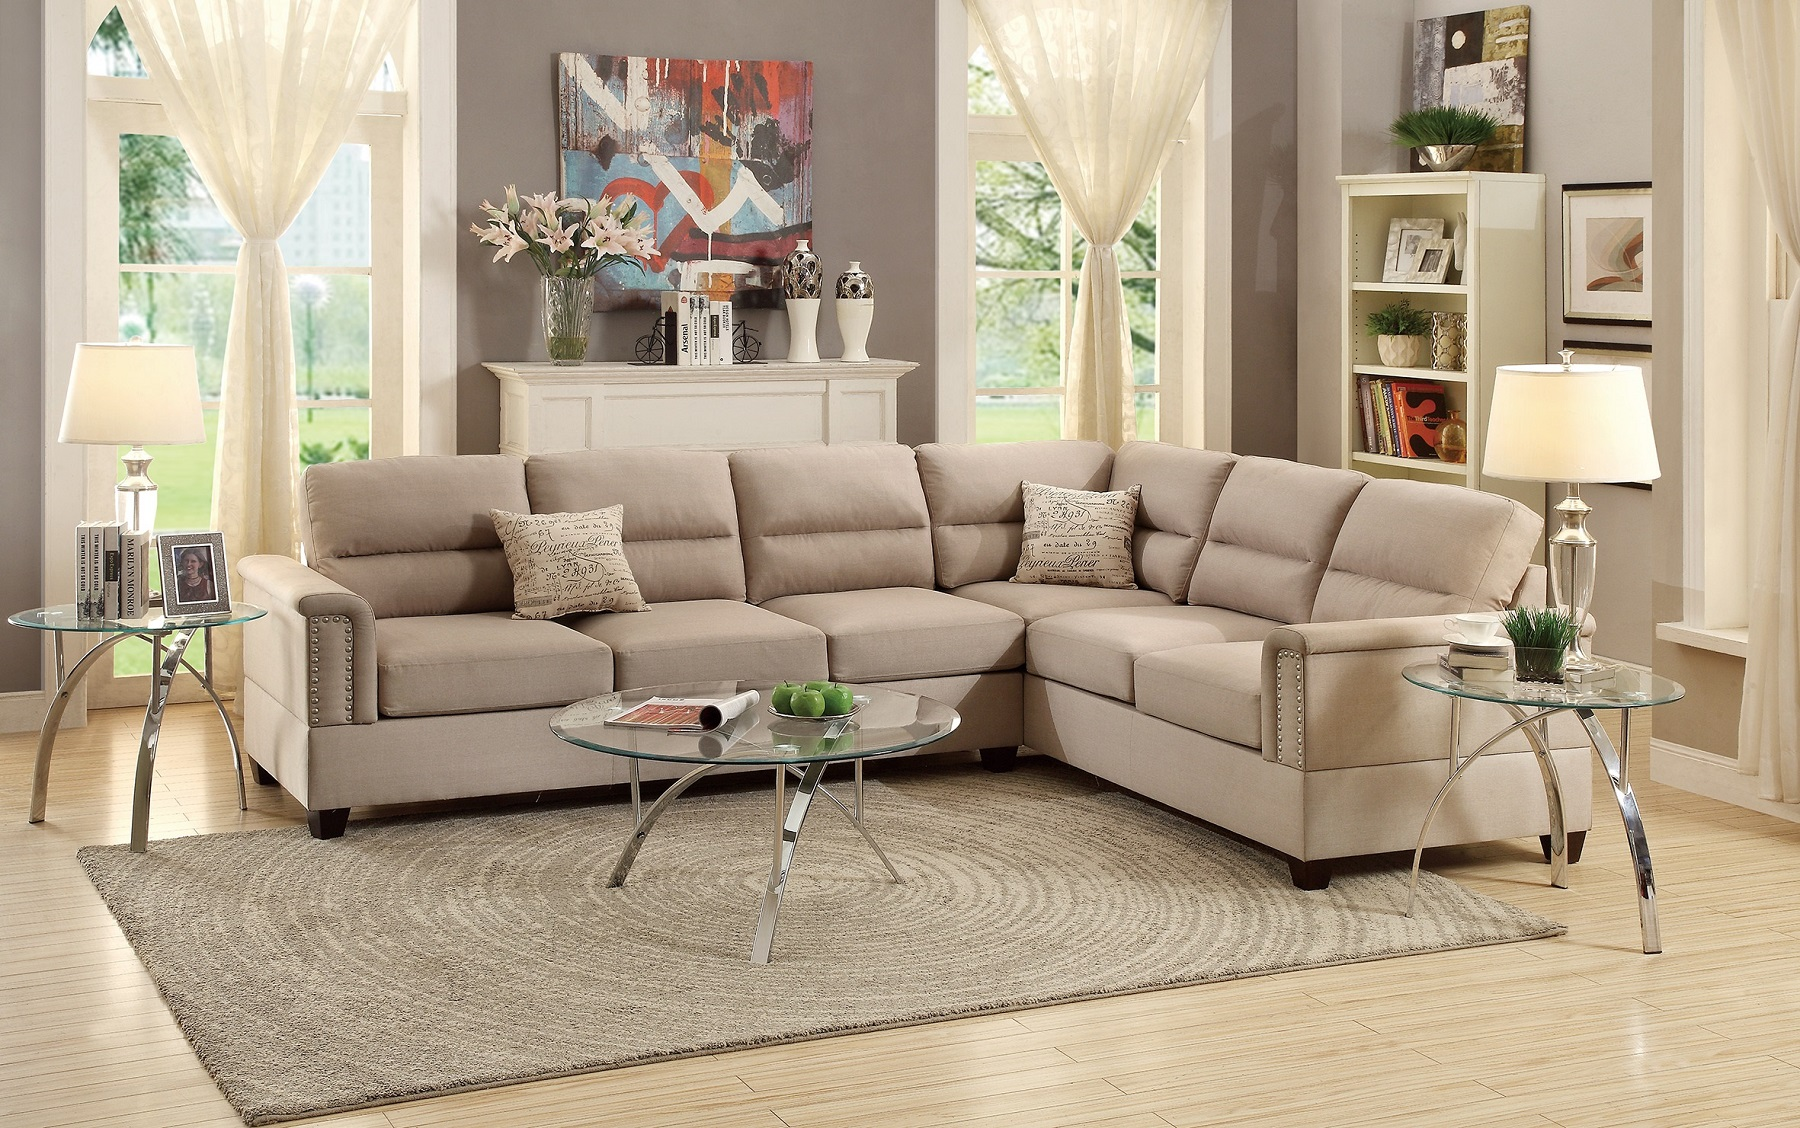 Fine Living Room Sectional Reversible Sectionals Sofa Love Seat Wedge Sand Polyfiber 2Pcs Set Plush Couch Spiritservingveterans Wood Chair Design Ideas Spiritservingveteransorg